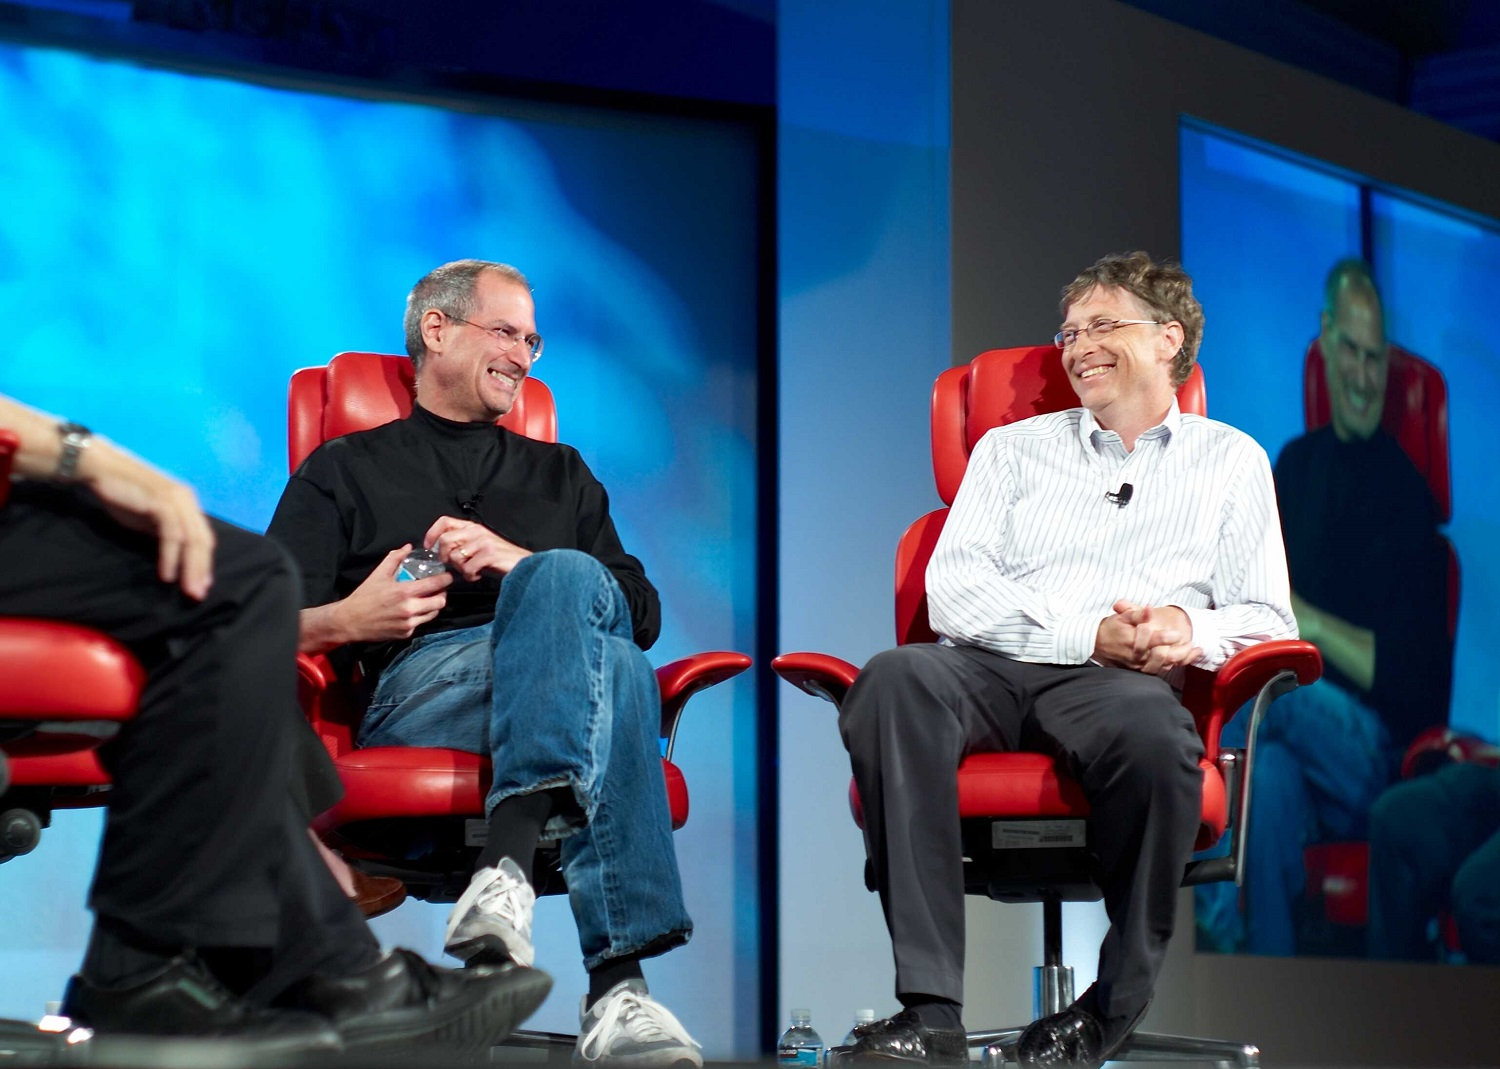 Steve Jobs and Bill Gates in an interview